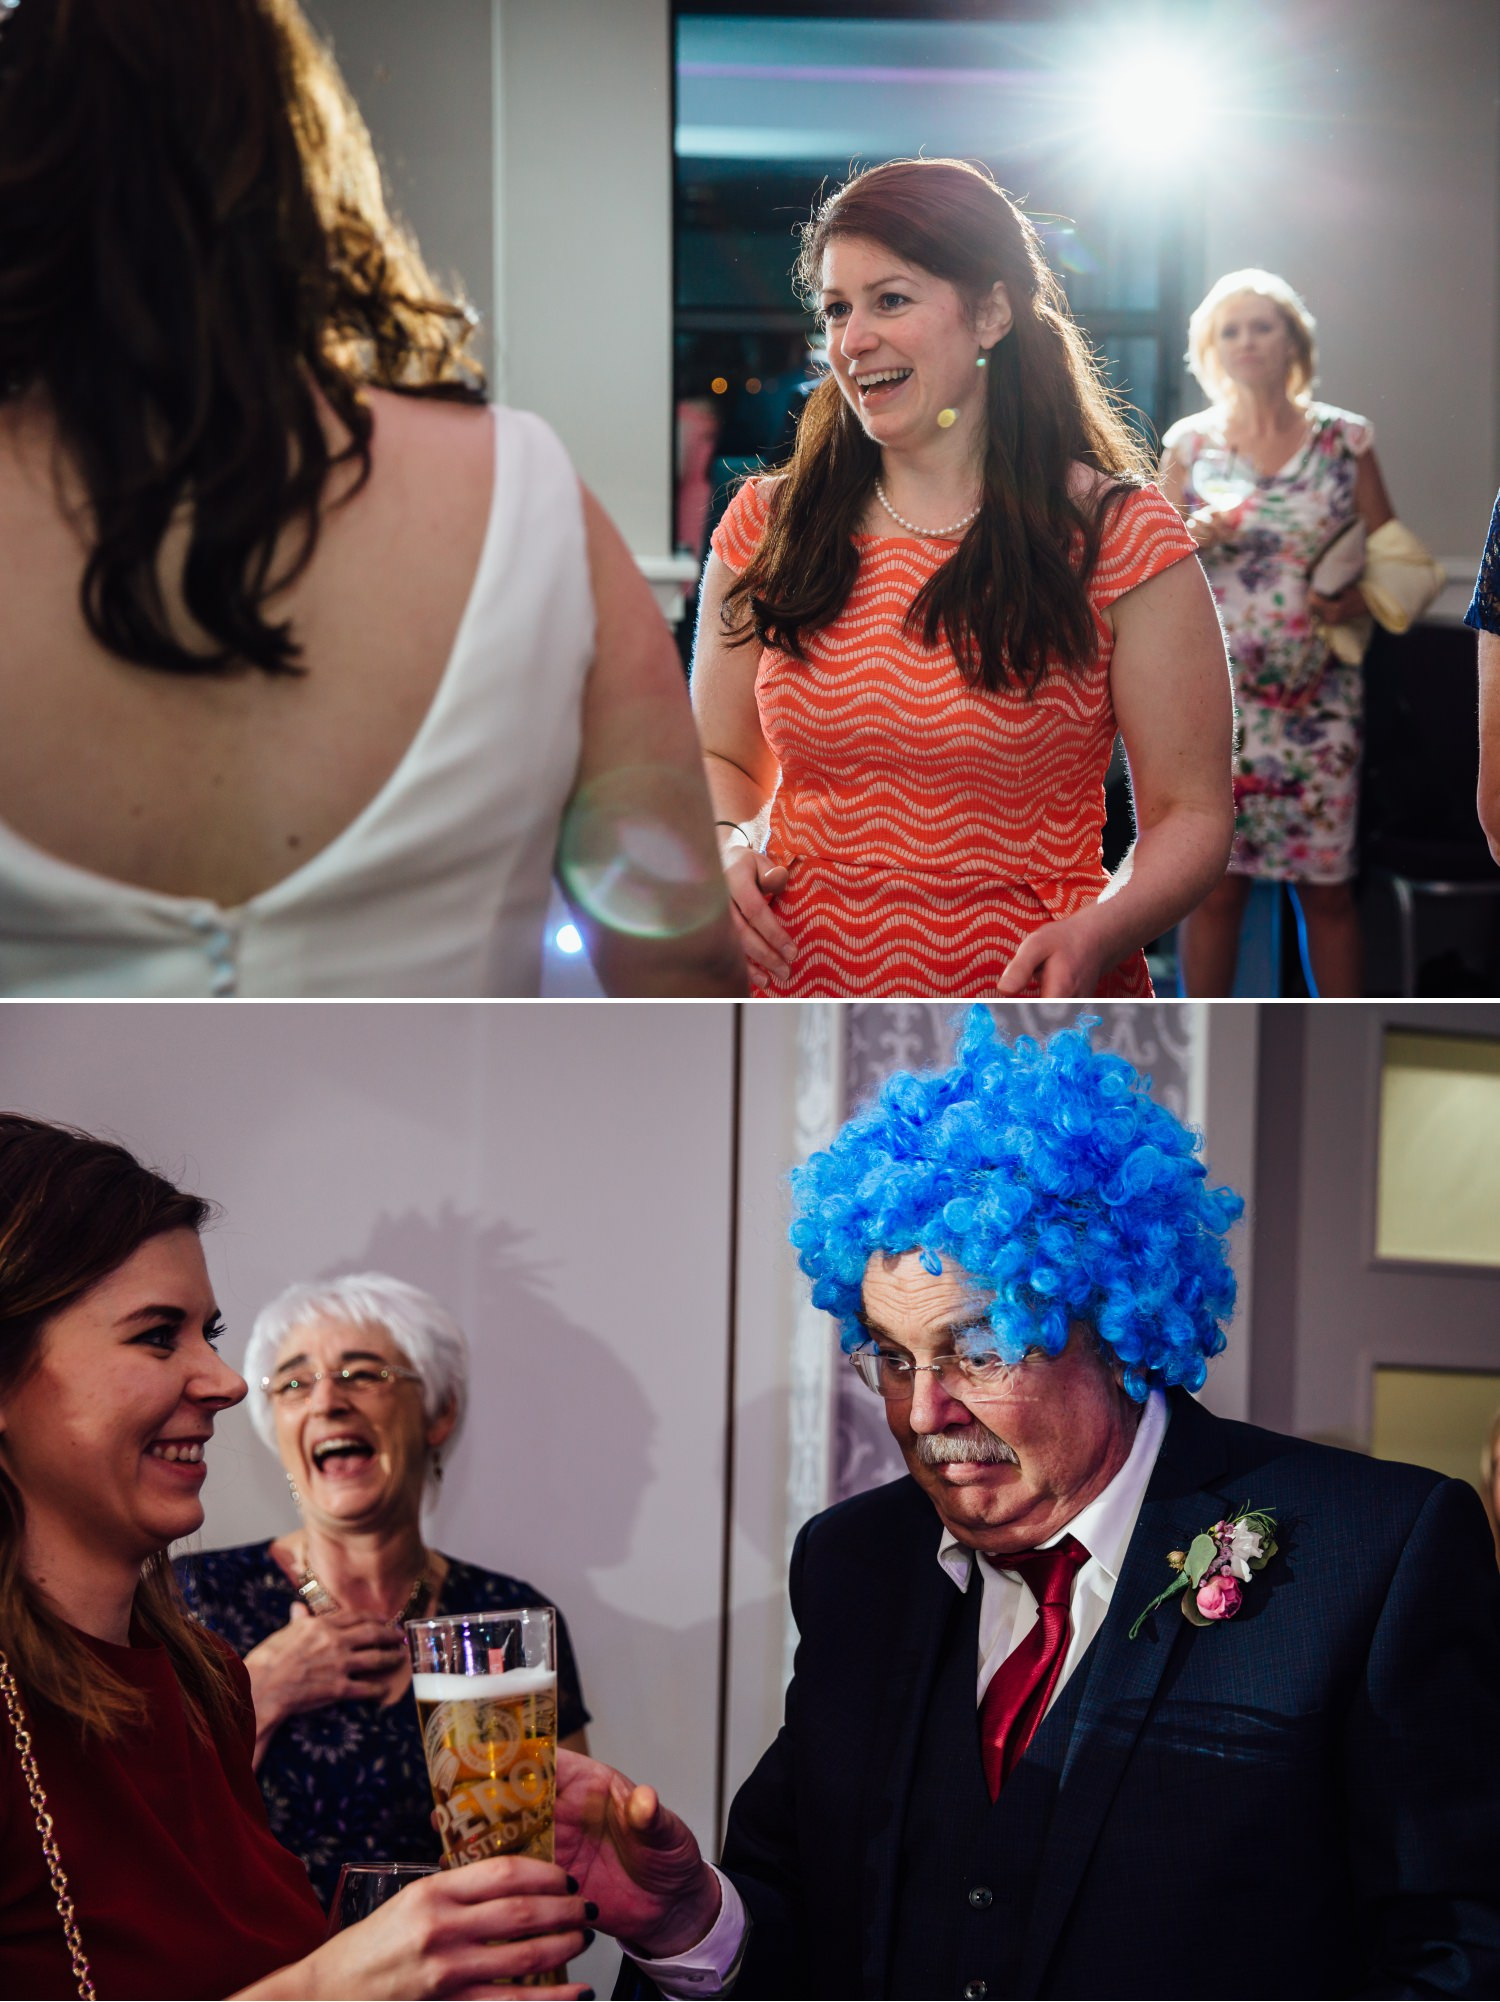 Wedding Photograph of evening dancing at Quay Hotel, North Wales